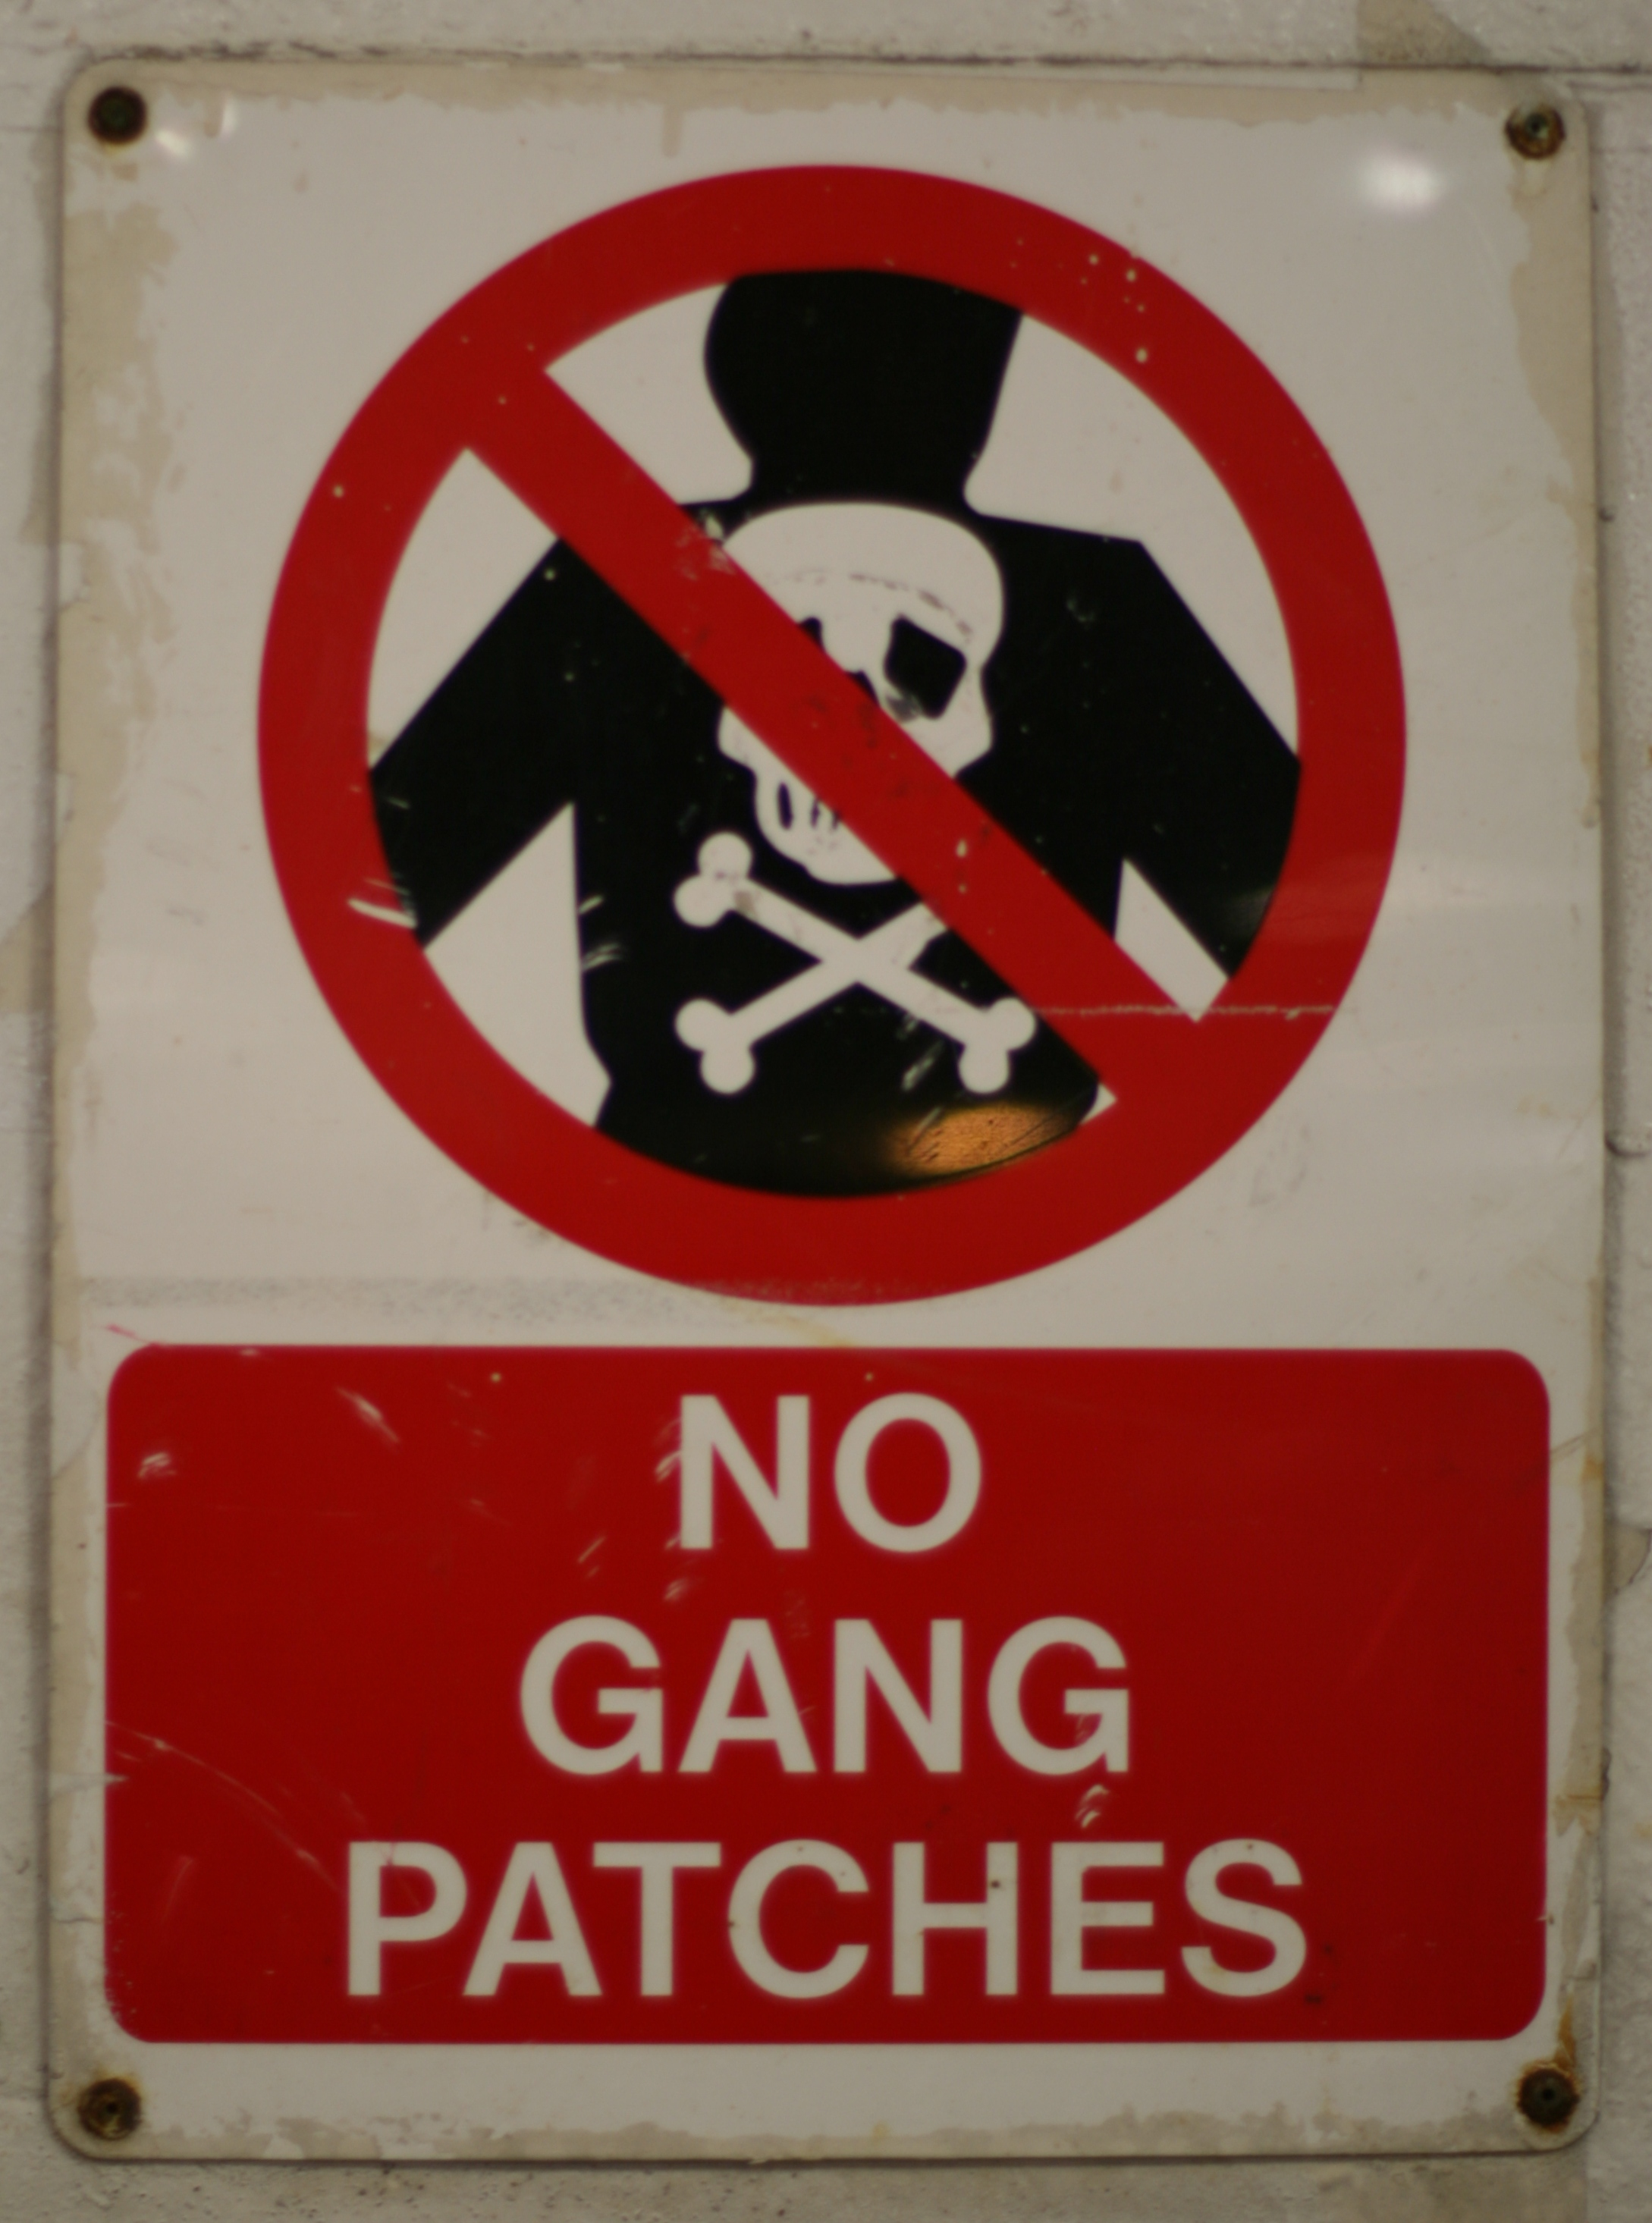 Gangs in New Zealand - Wikipedia